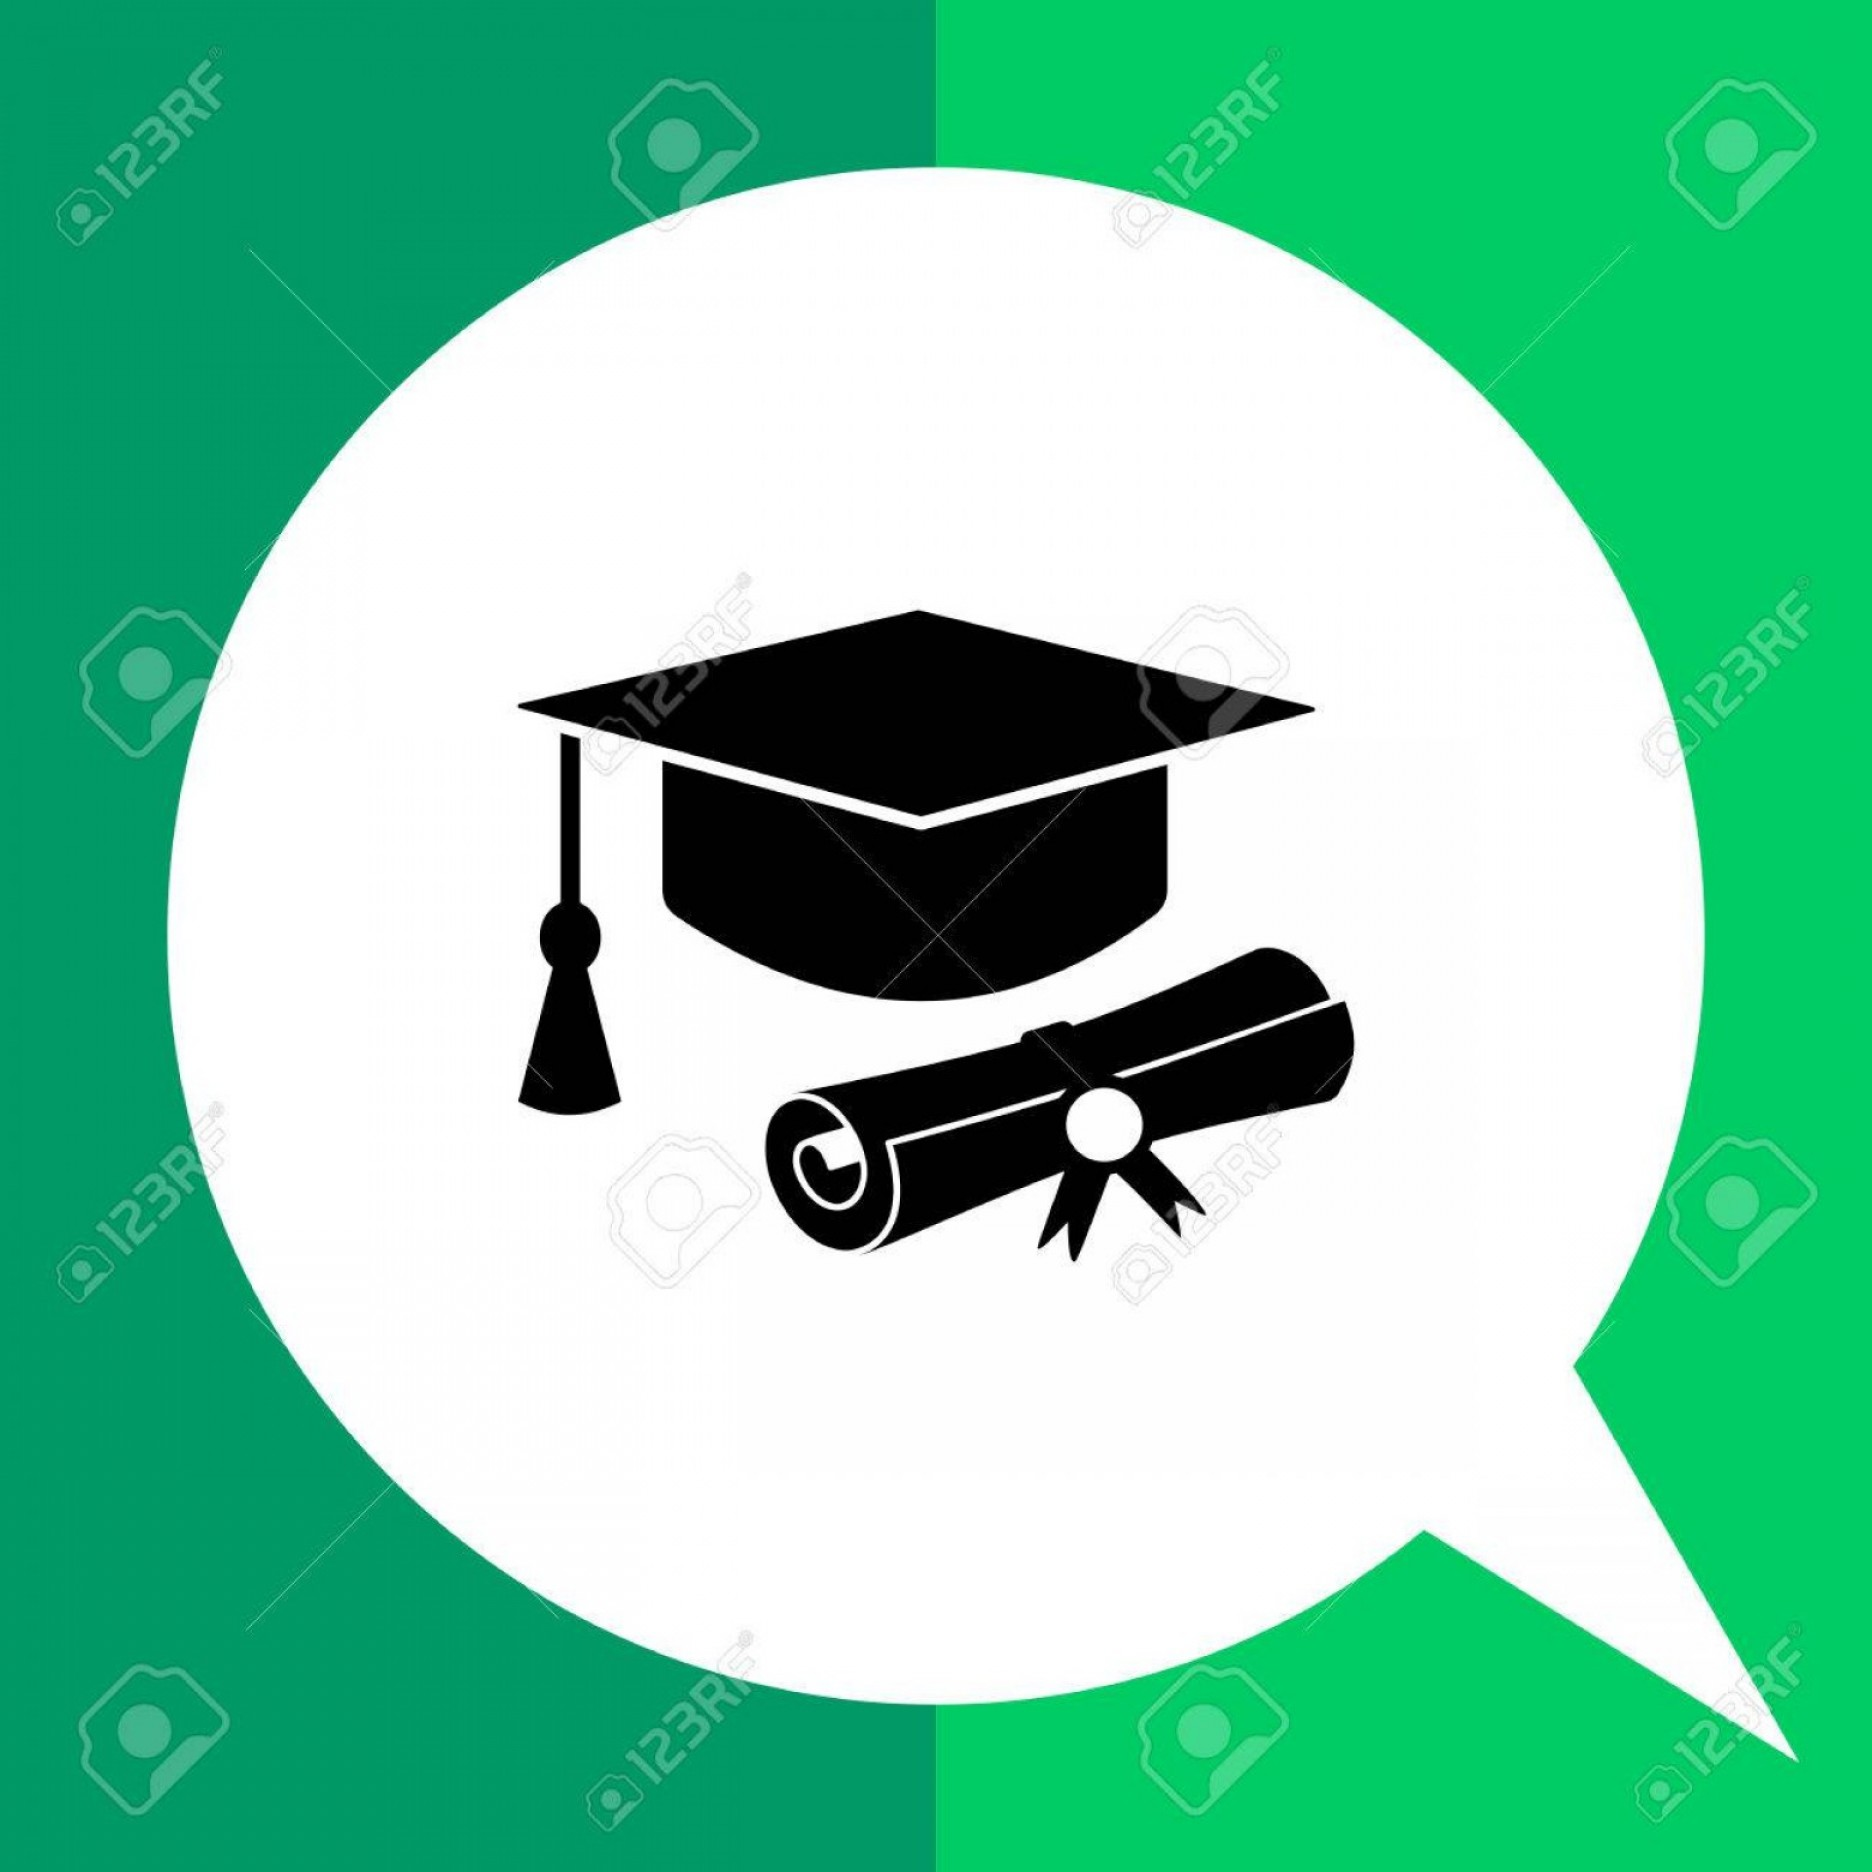 Tassel Vector: Photostock Vector Monochrome Vector Icon Of Diploma Roll And Graduate Hat With Tassel Representing Education